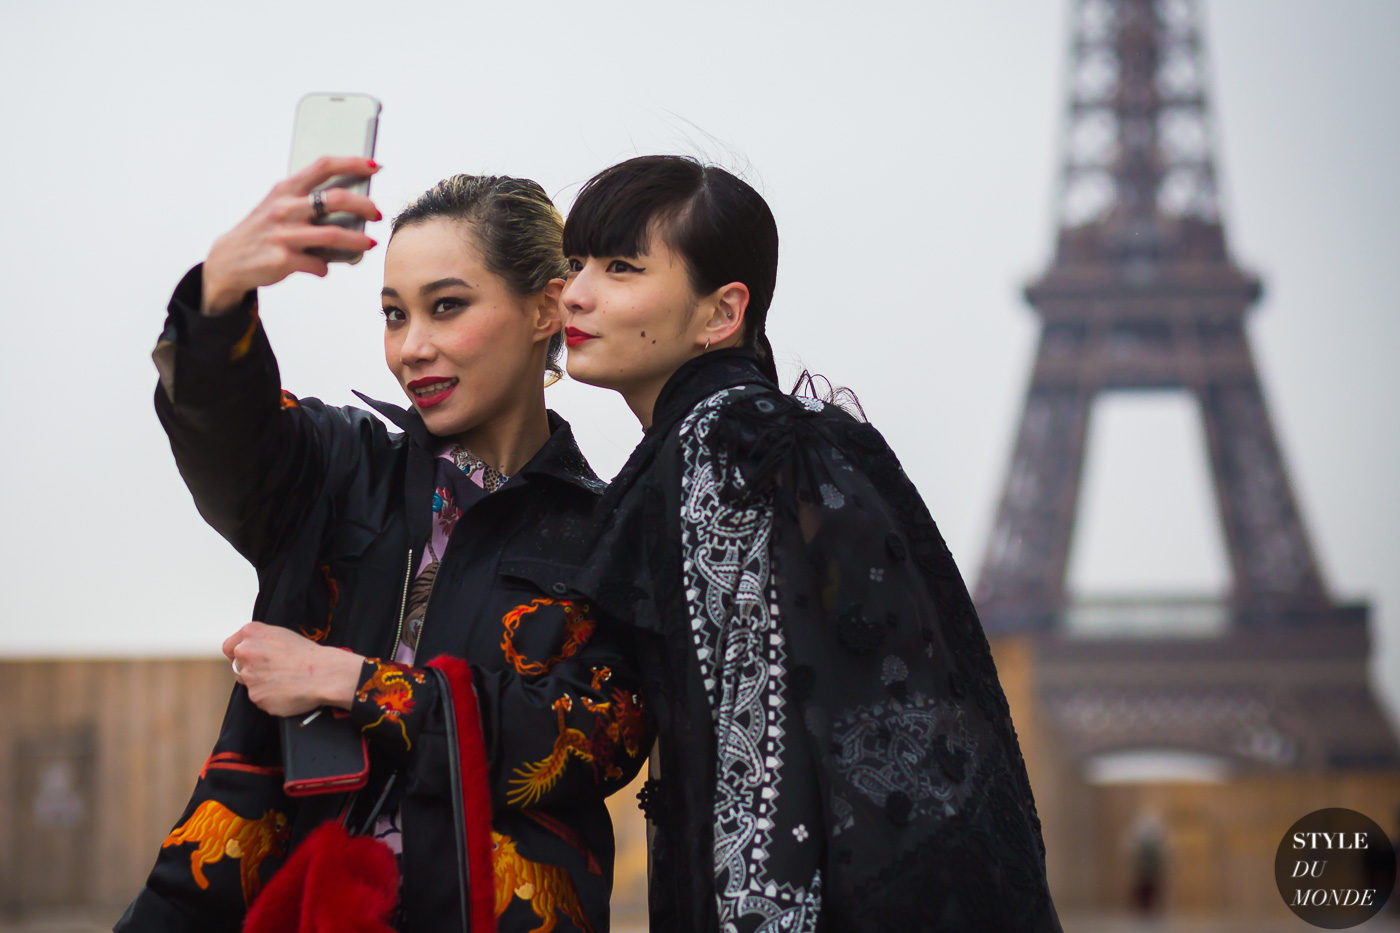 mademoiselle-yulia-and-kozue-akimoto-by-styledumonde-street-style-fashion-photography